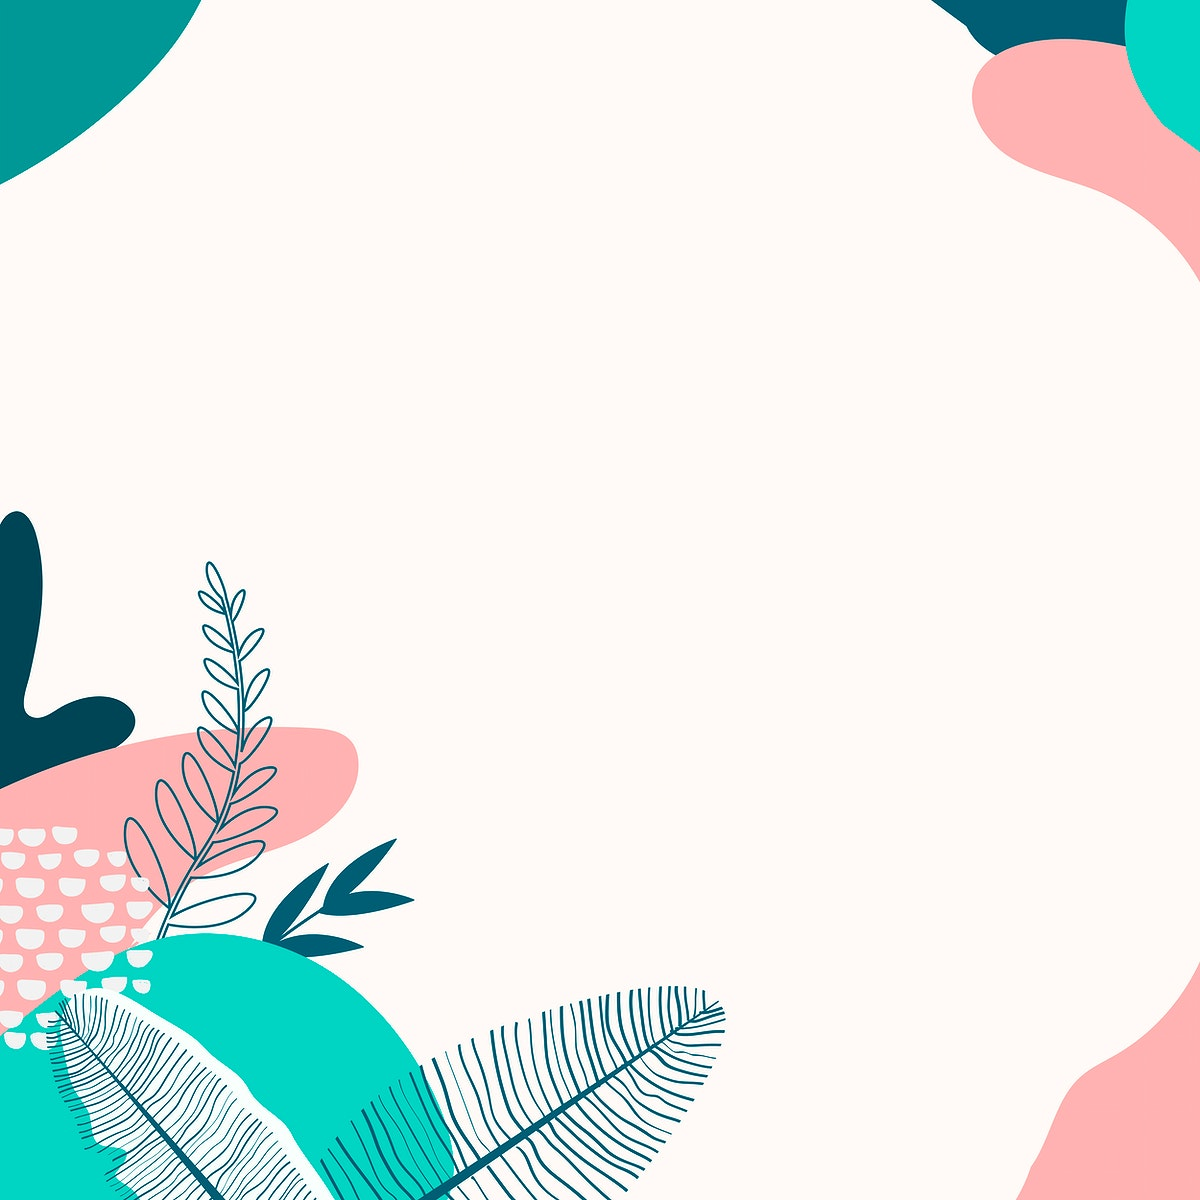 Beige and green abstract botanical patterned background vector